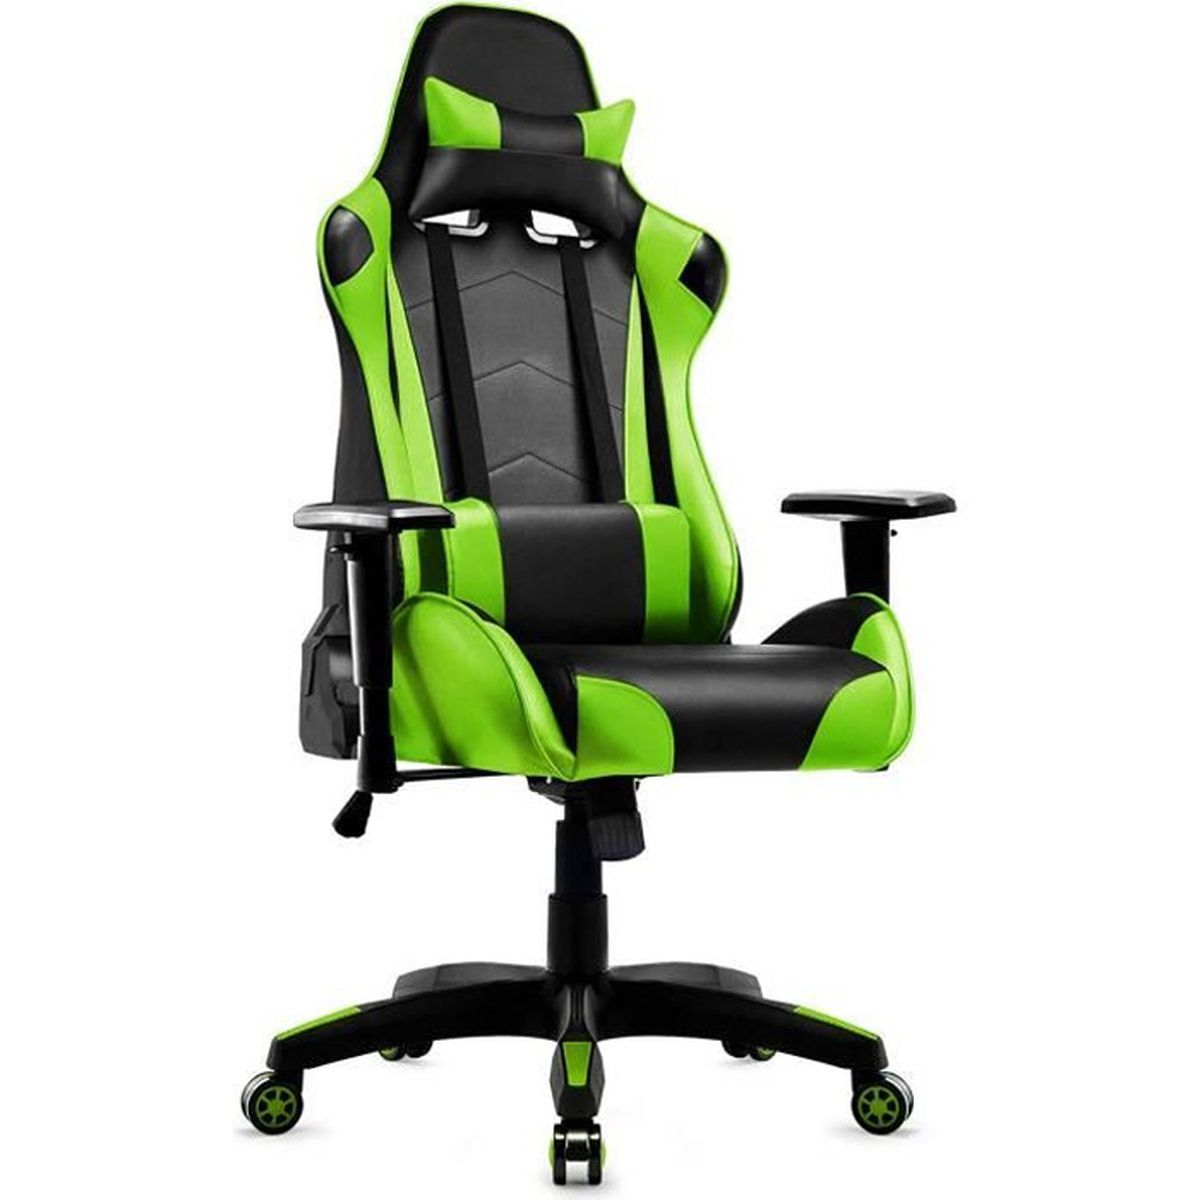 Achat Cher Fauteuil Gamer Vente Vert Pas Y76Ibygvf